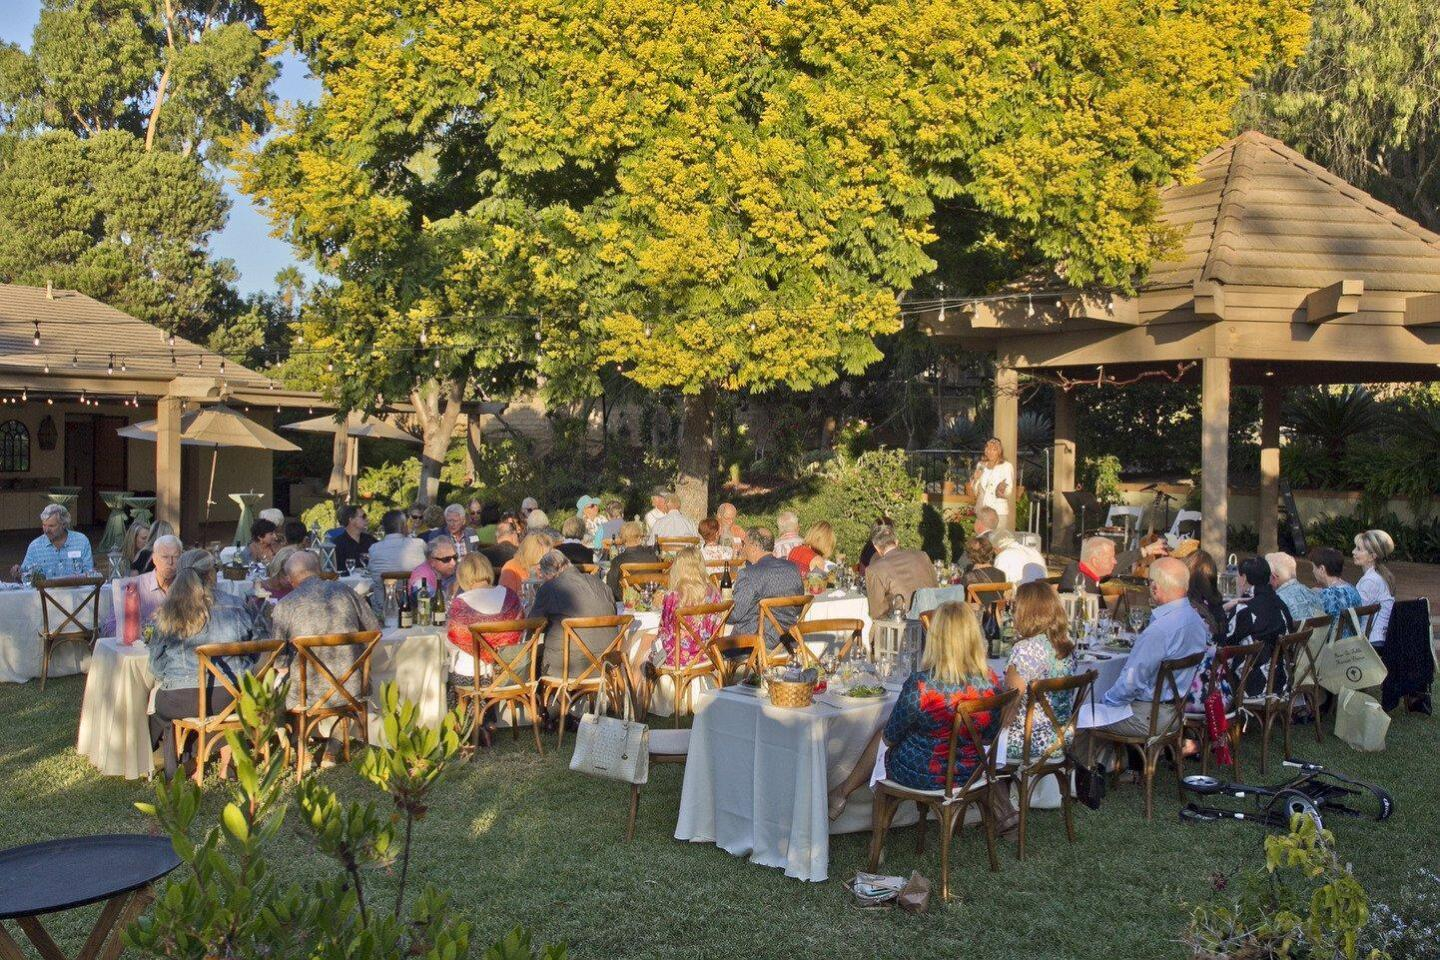 The Farm-to-Table event was hosted at the RSF Garden Club